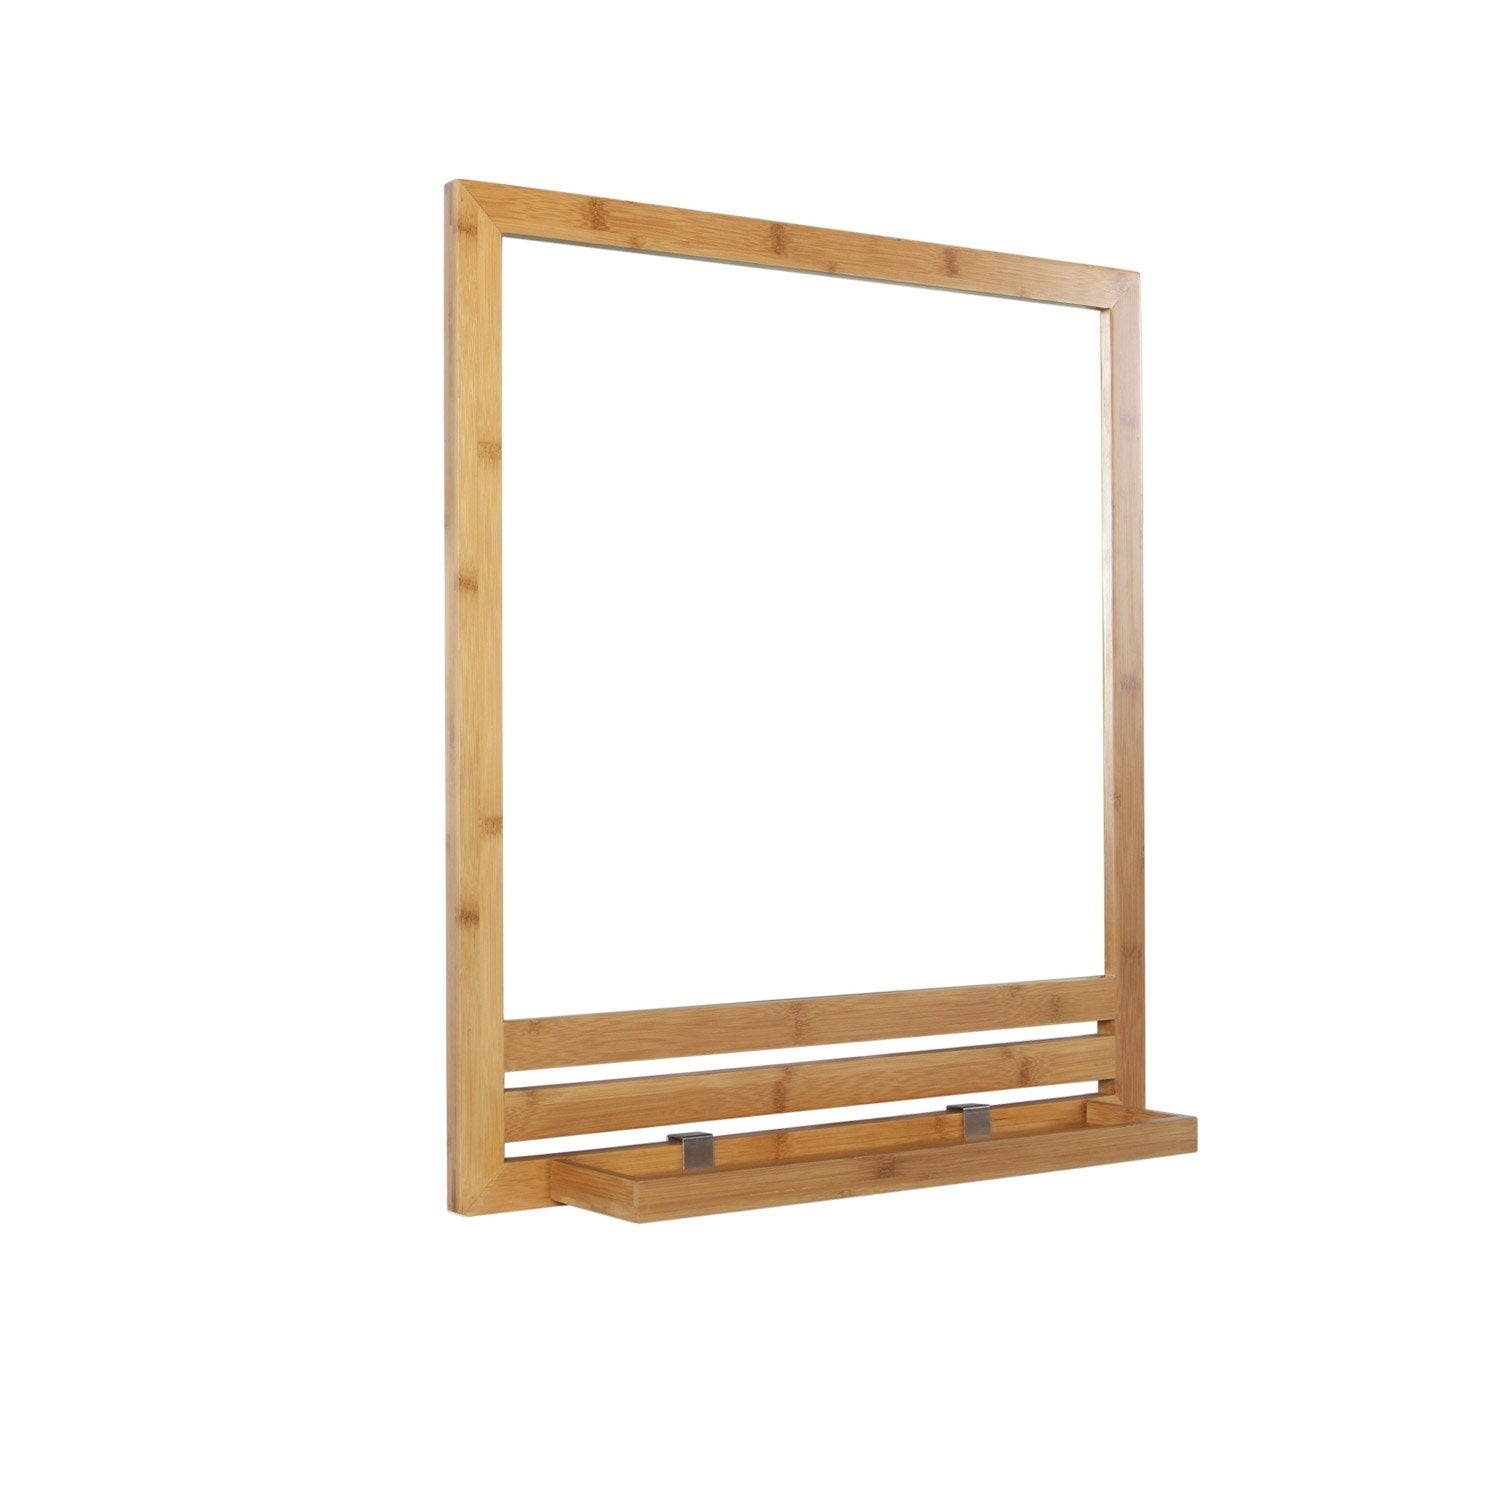 Miroir avec tablette natural leroy merlin for Miroir tablette